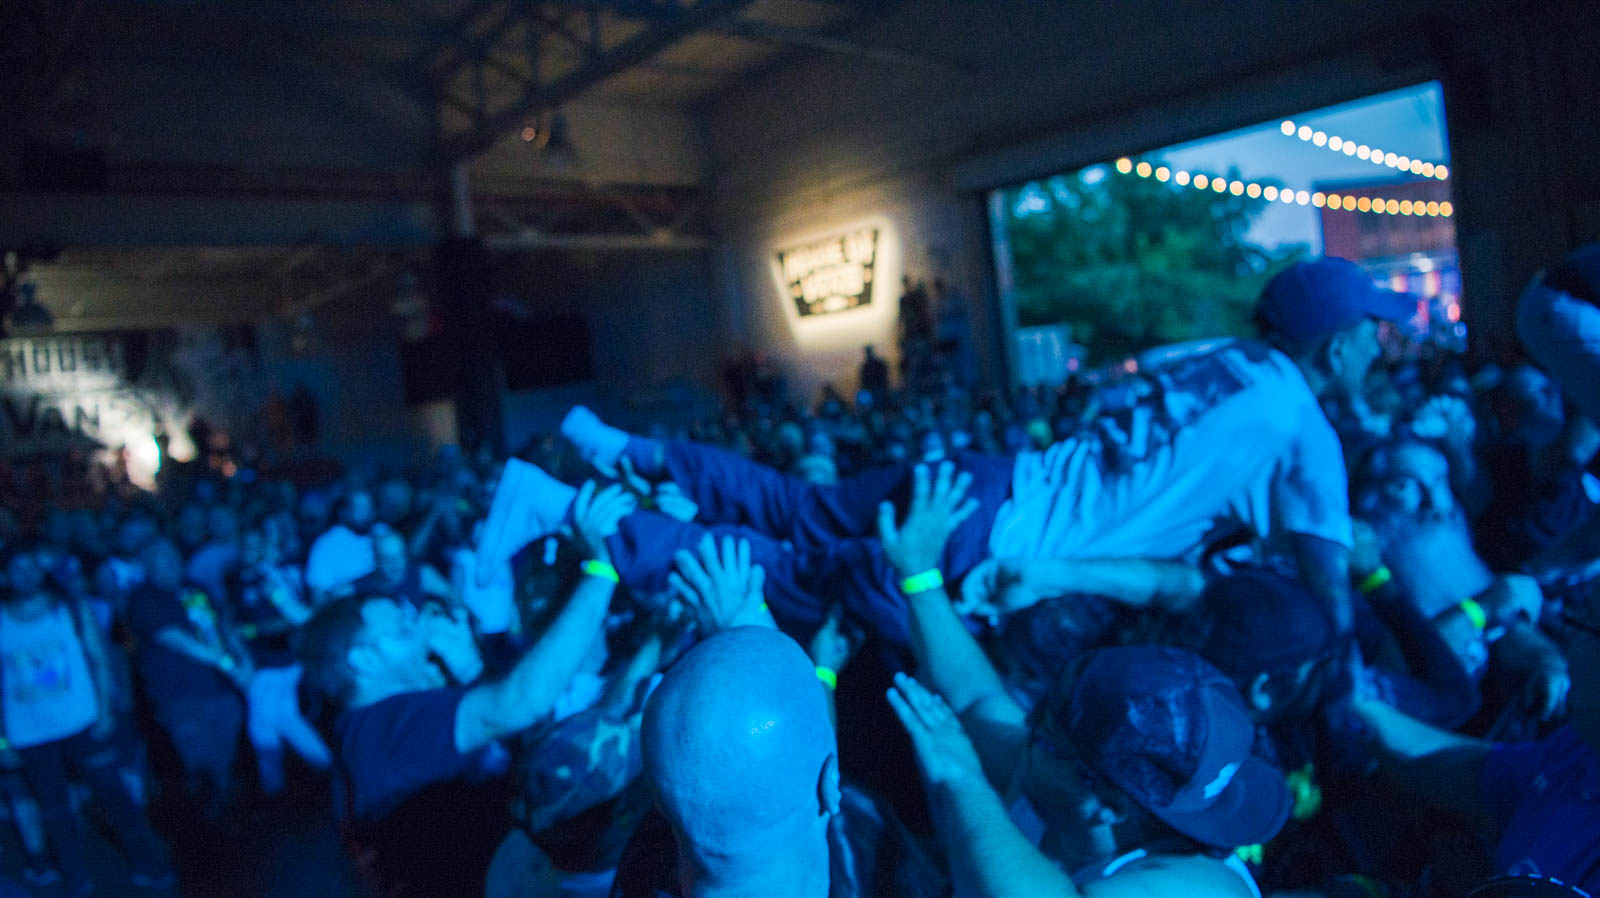 During Killing Time at House of Vans